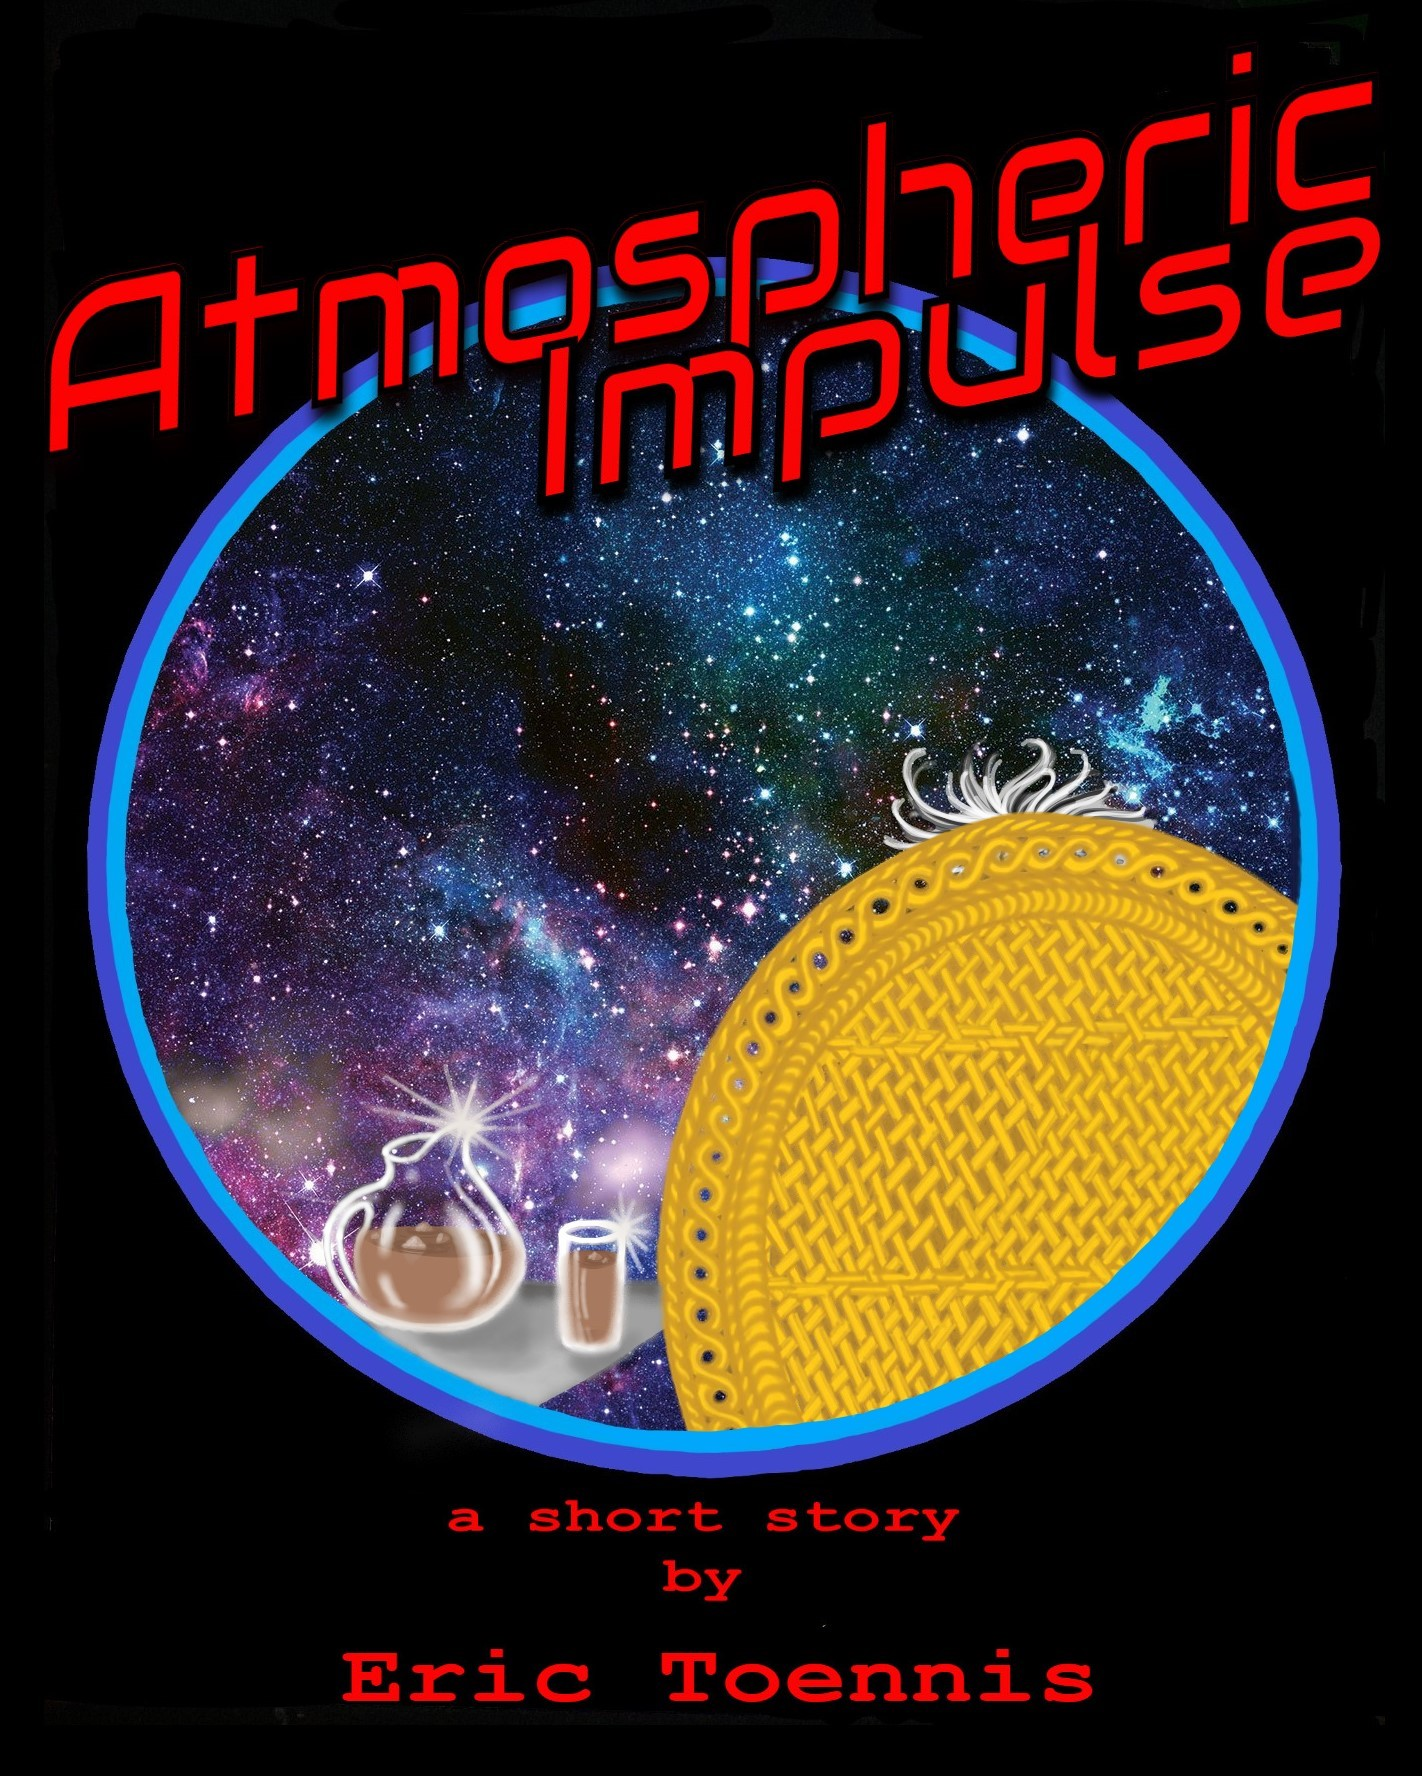 atmosphericimpulsecover2png.jpg